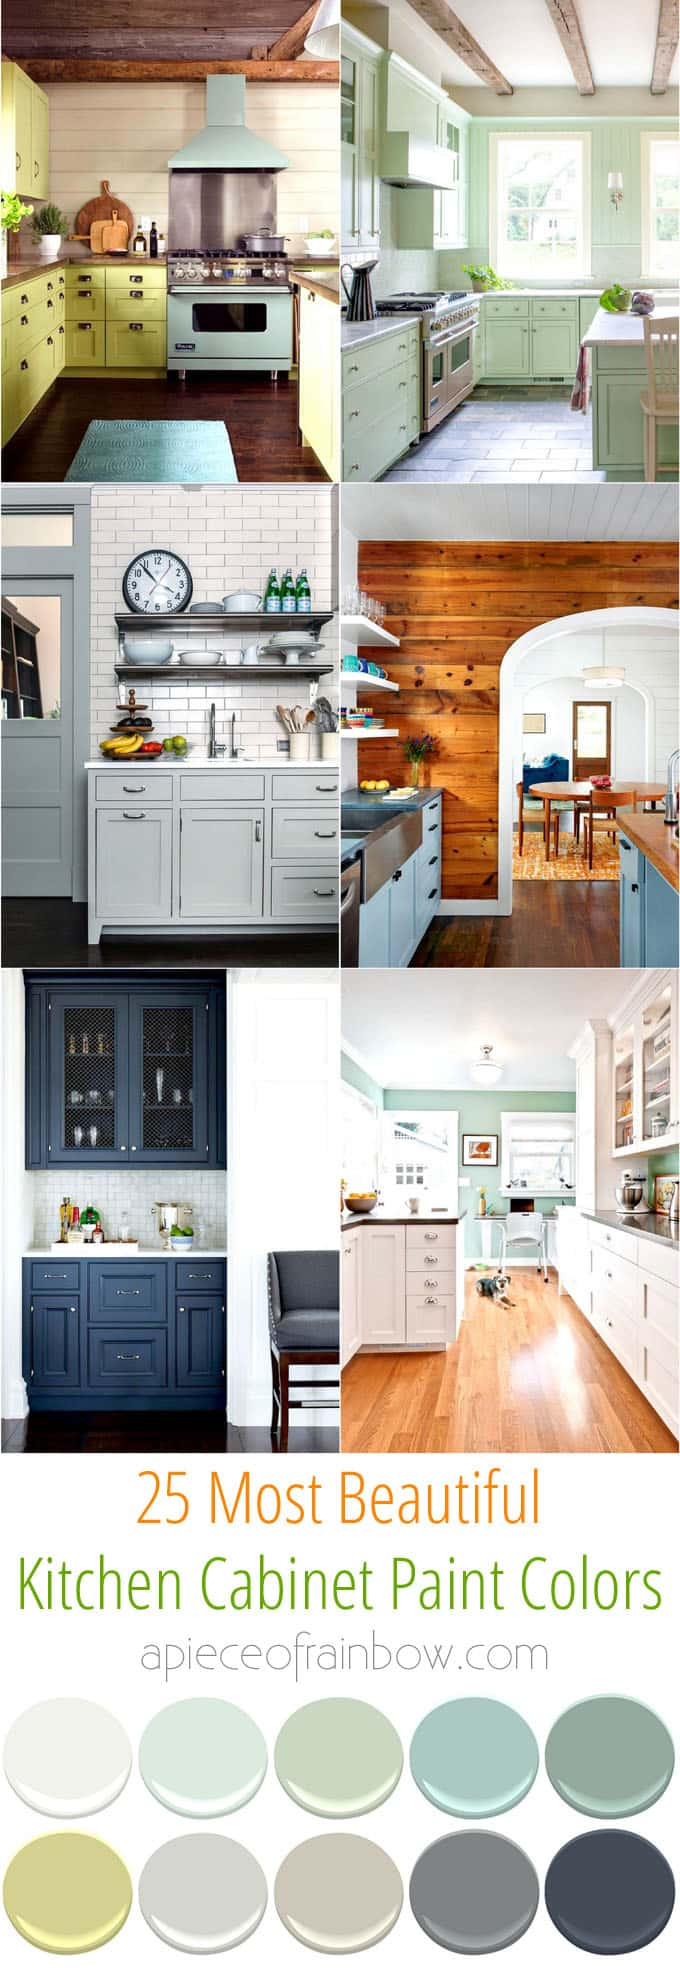 kitchen cabinets color repainting 25 gorgeous cabinet colors paint combos a piece of beautiful for apieceofrainbowblog